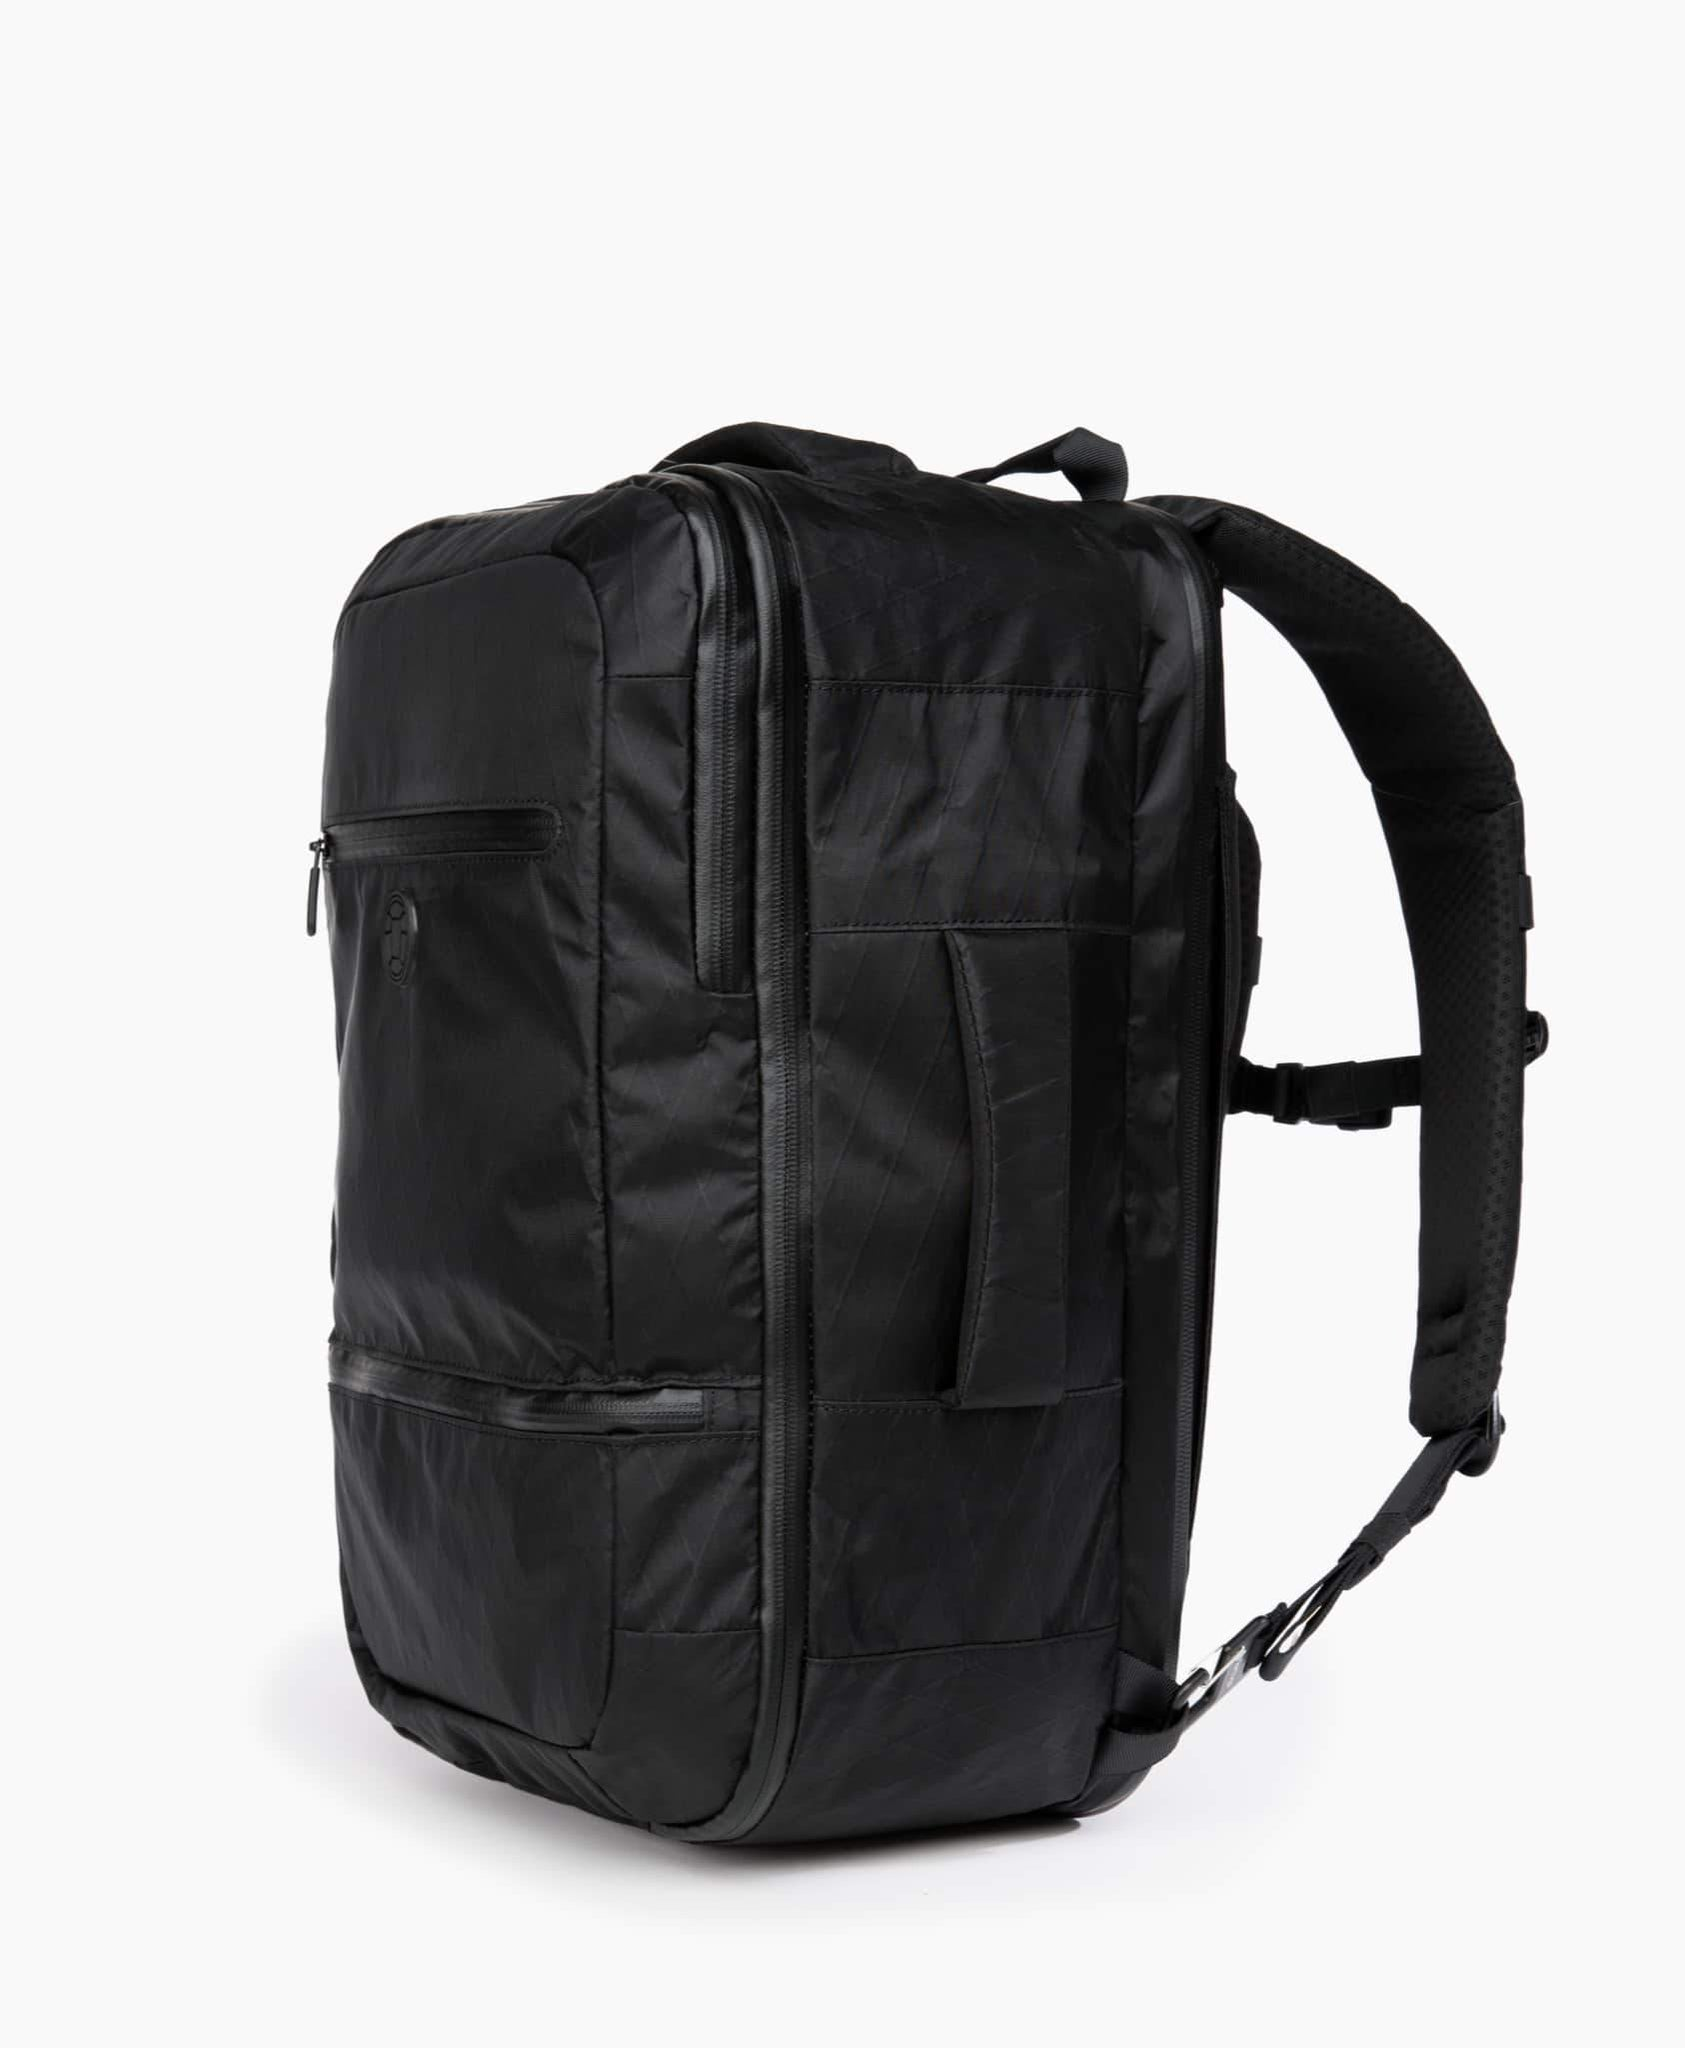 product/ Just the right size for short trips or luggage overflow